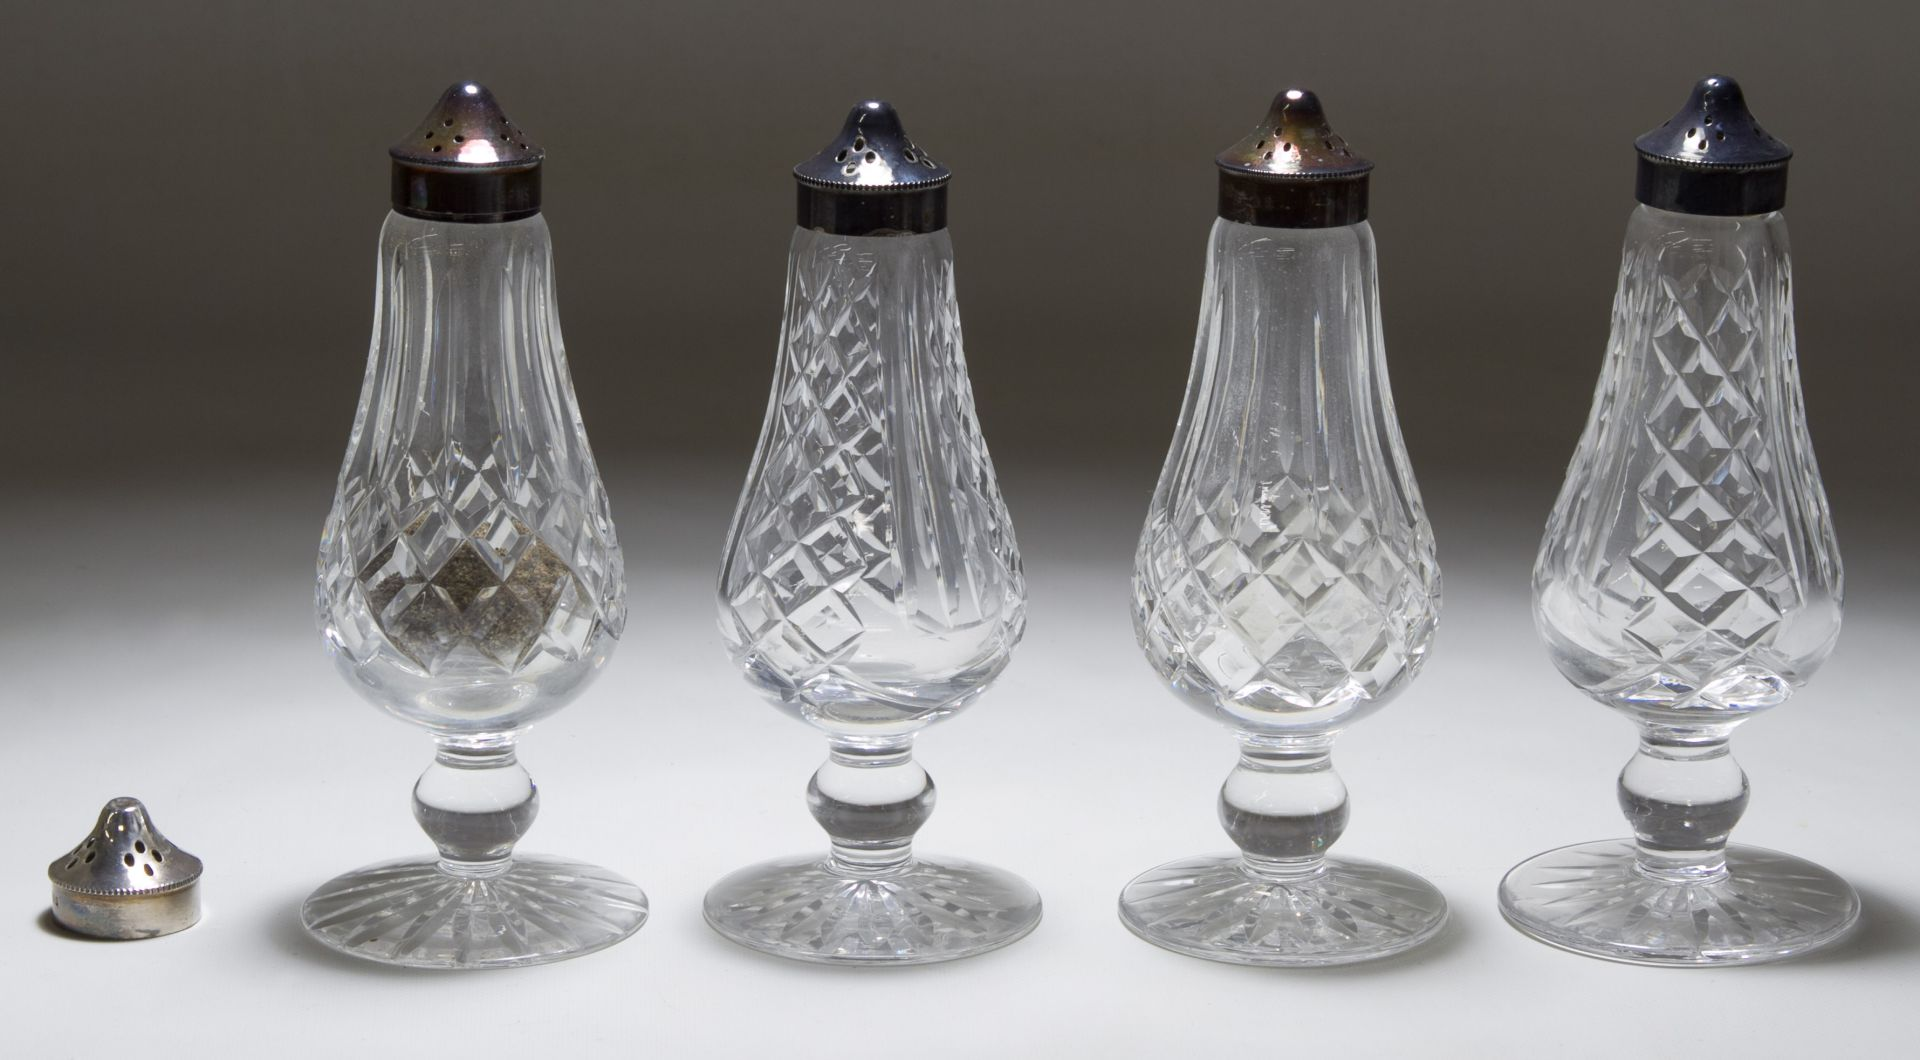 Lot 388 Waterford Crystal Salt And Pepper Shakers Leonard Auction